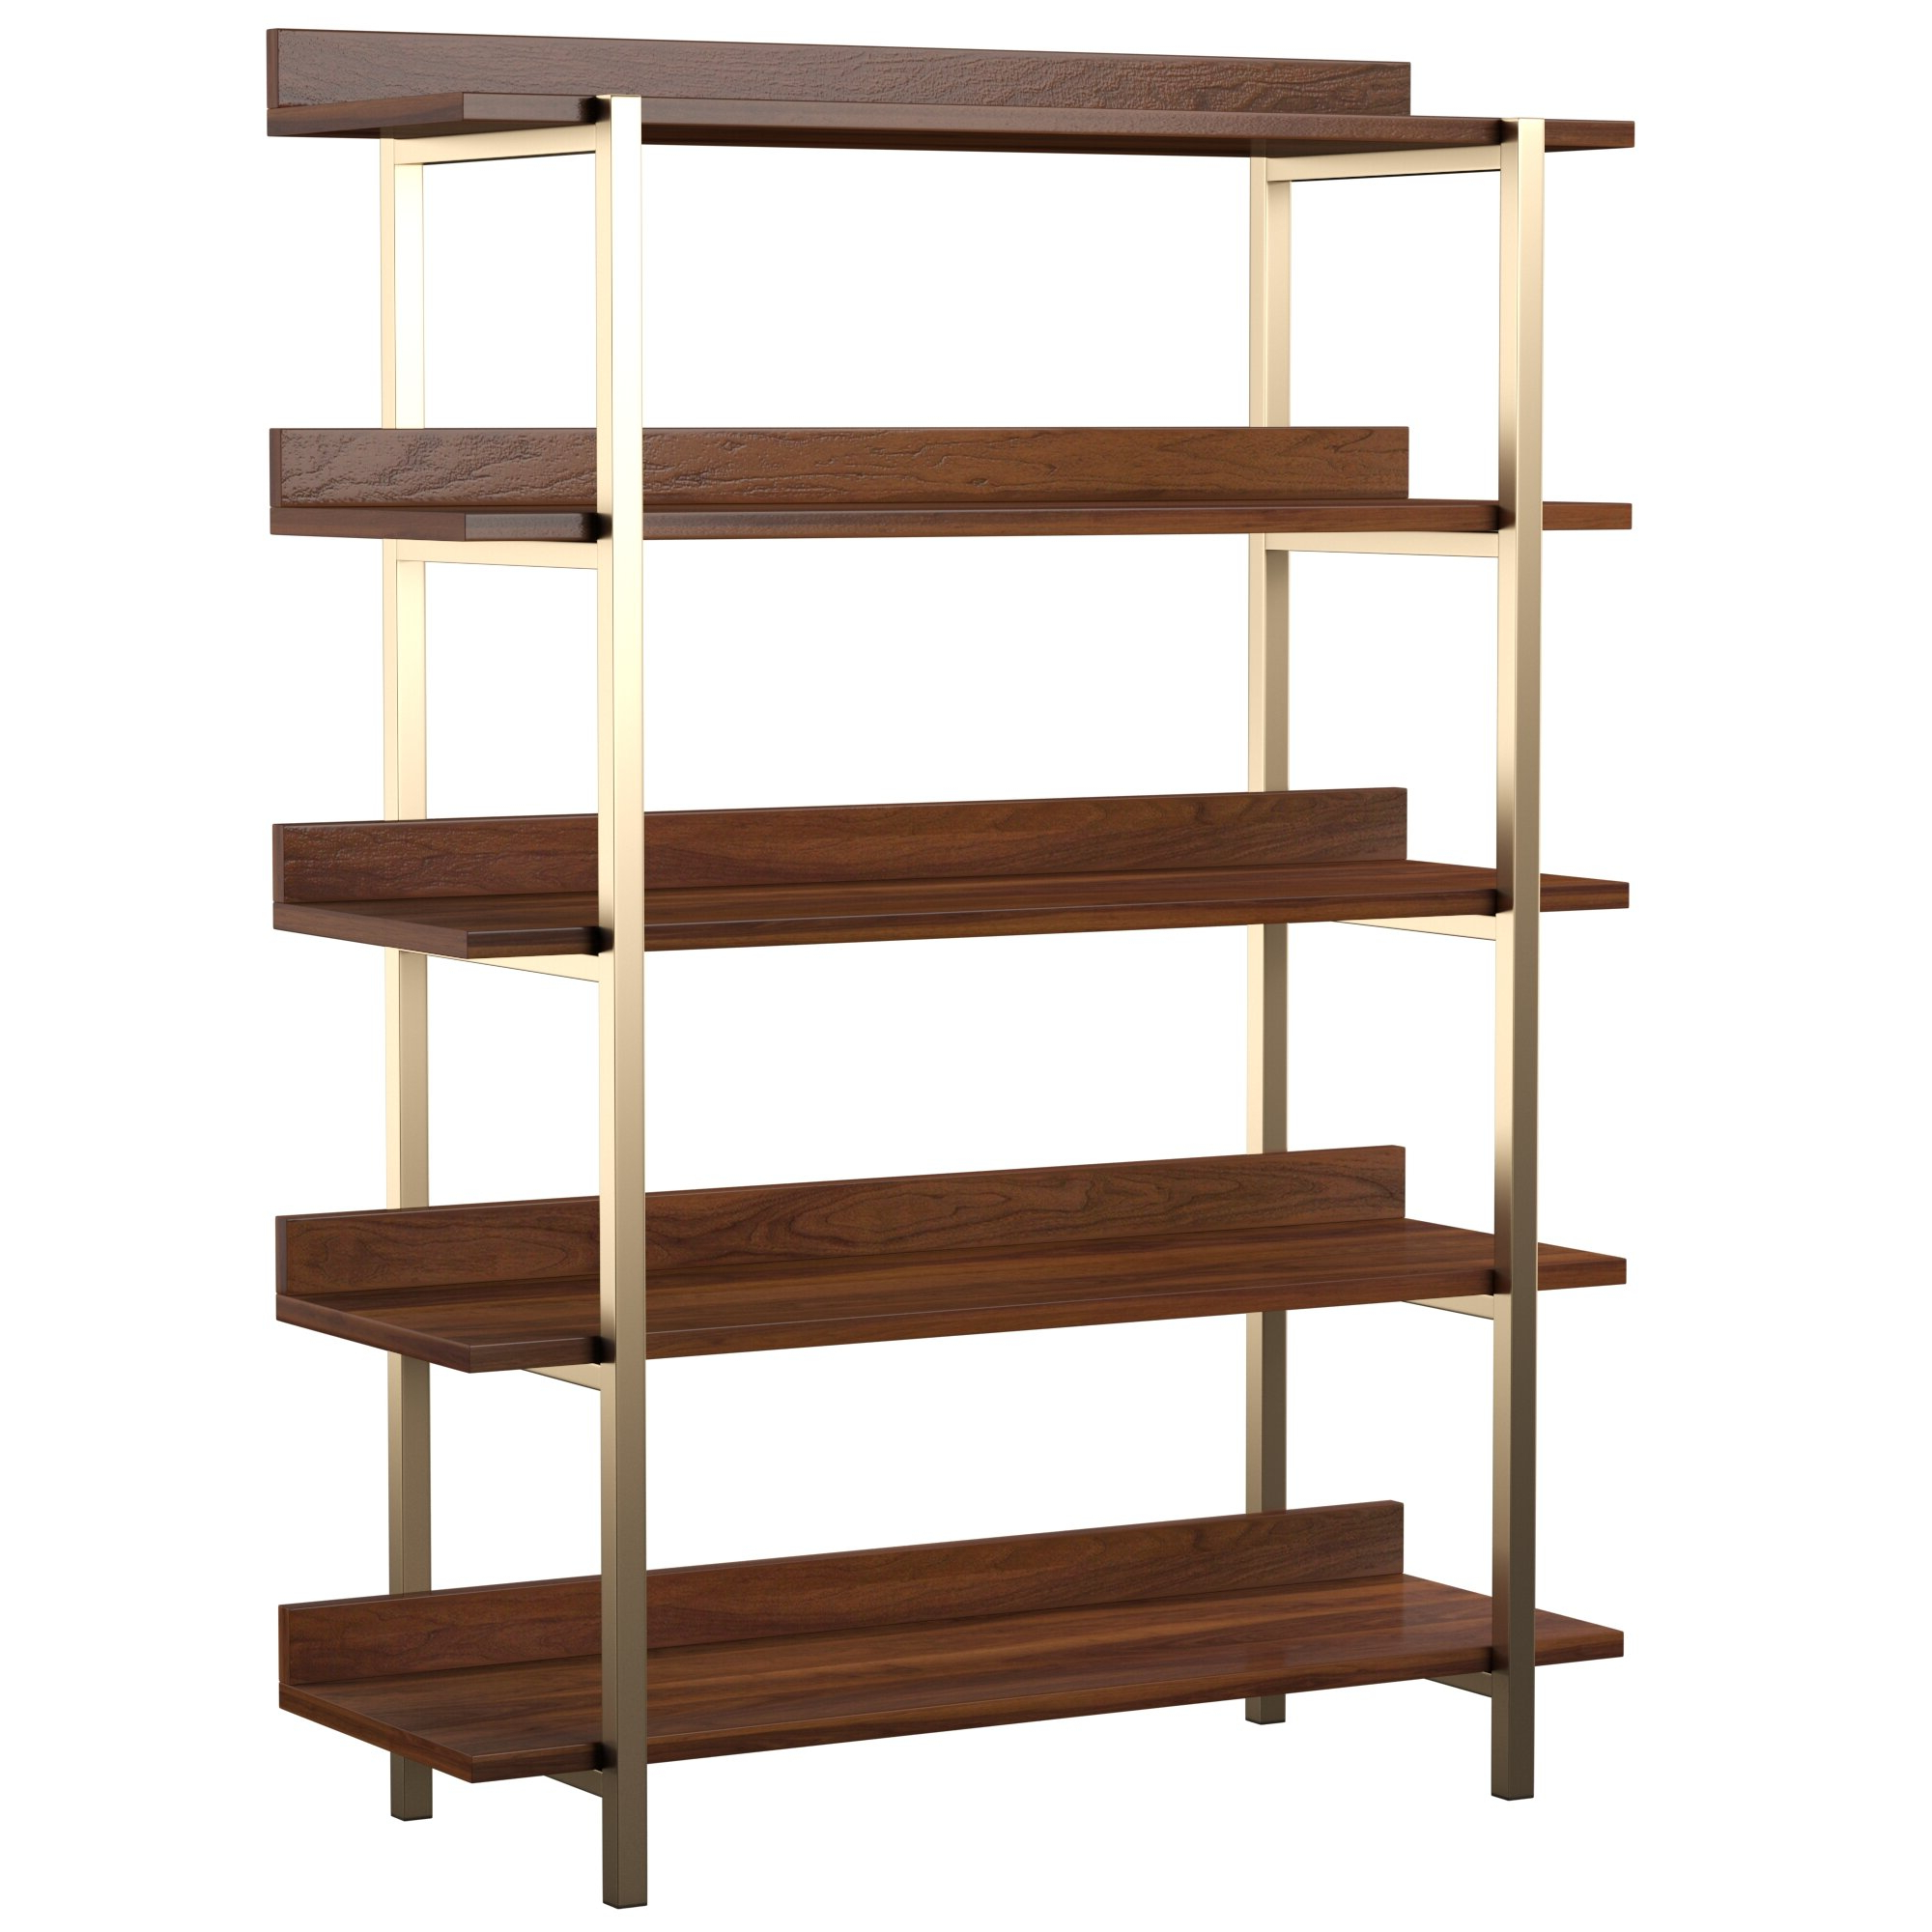 Rhoads Etagere Bookcase Pertaining To Well Known Crowley Standard Bookcases (View 19 of 20)